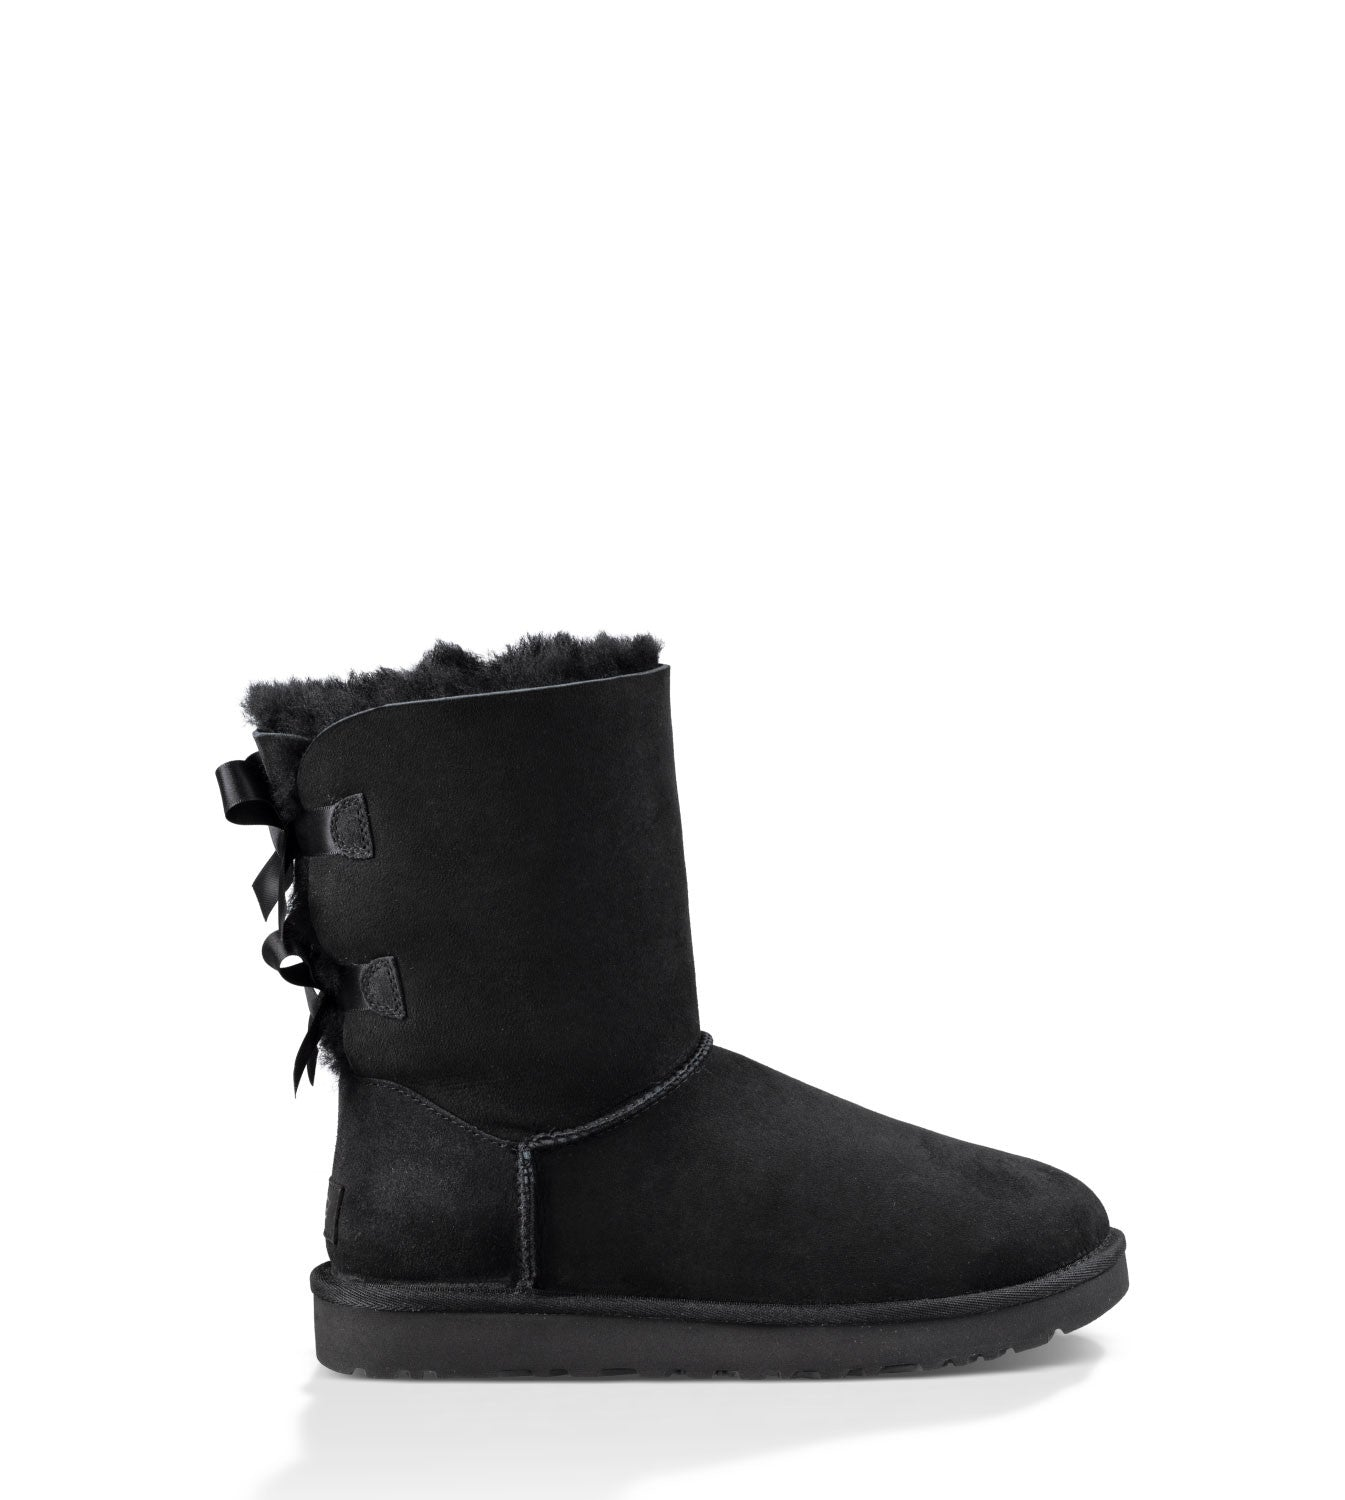 UGG Australia Women's Bailey Bow II in Black